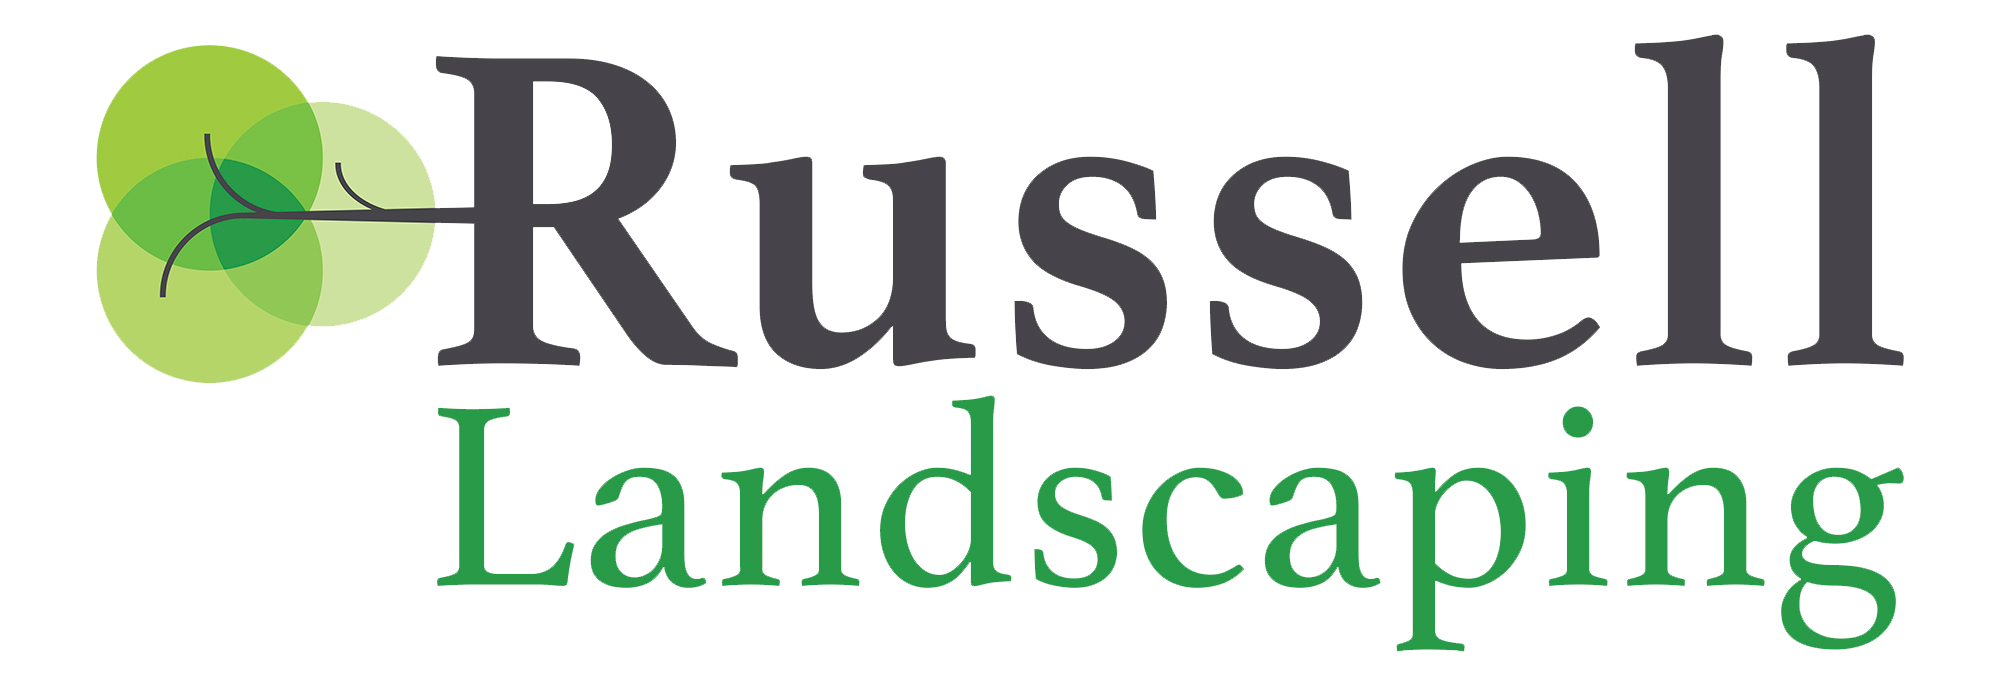 Russell-Landscaping-logo-cork